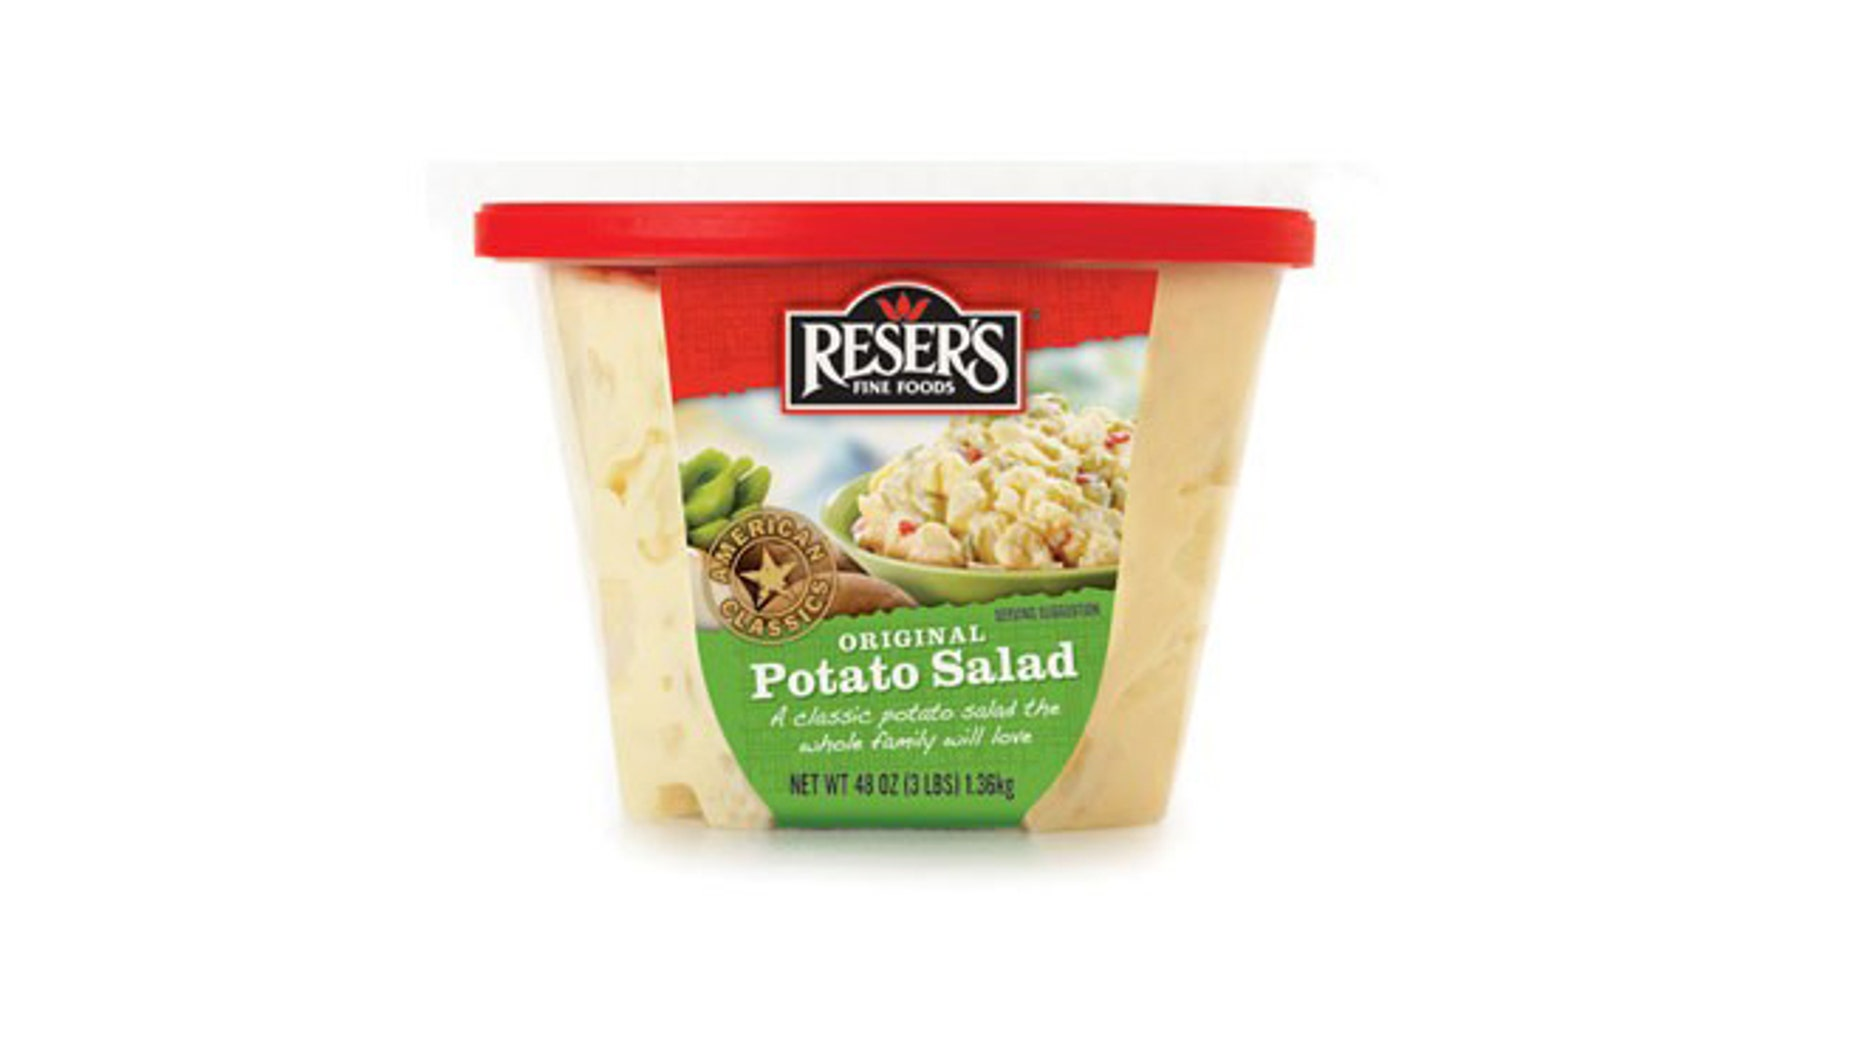 Reser's Fine Foods, which manufactures the potato salad pictured here, issued a recall this week due to concerns over possible listeria contamination.